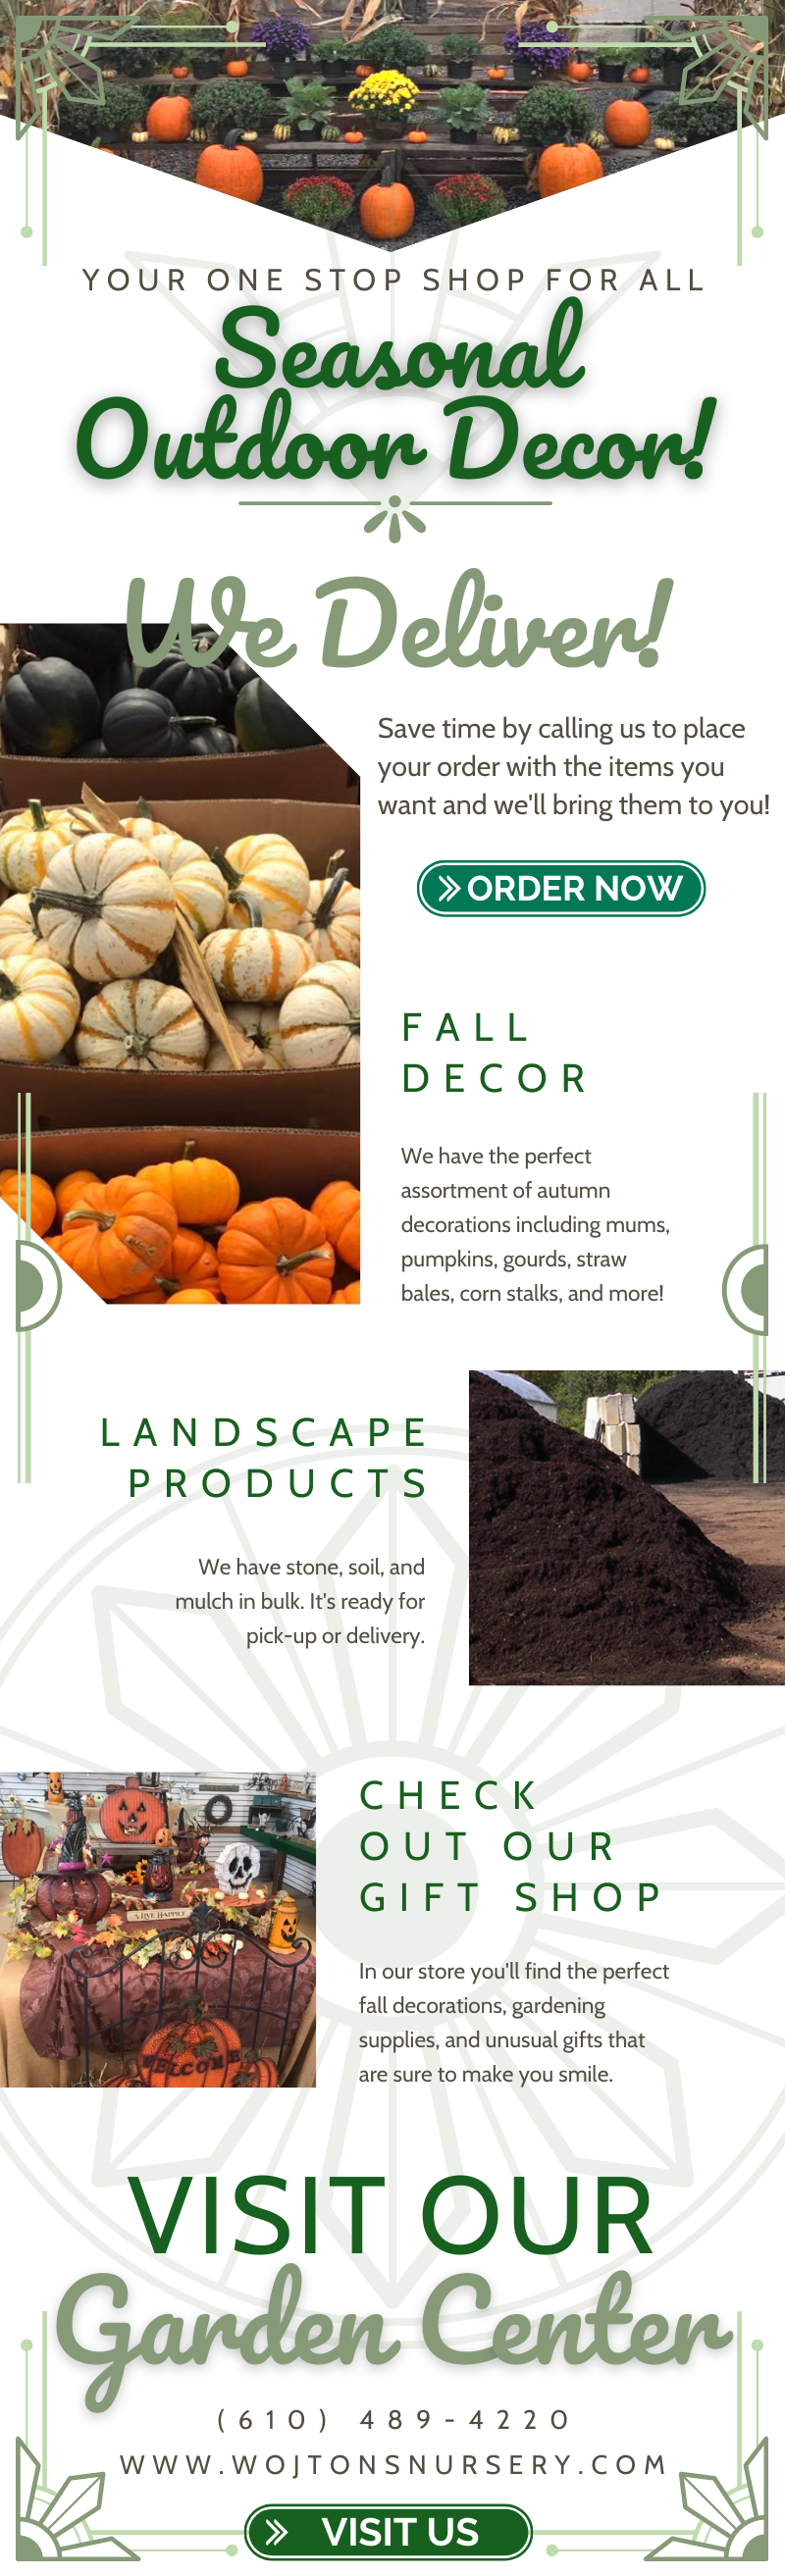 Your One-Stop Shop for Seasonal Outdoor Decor! 1